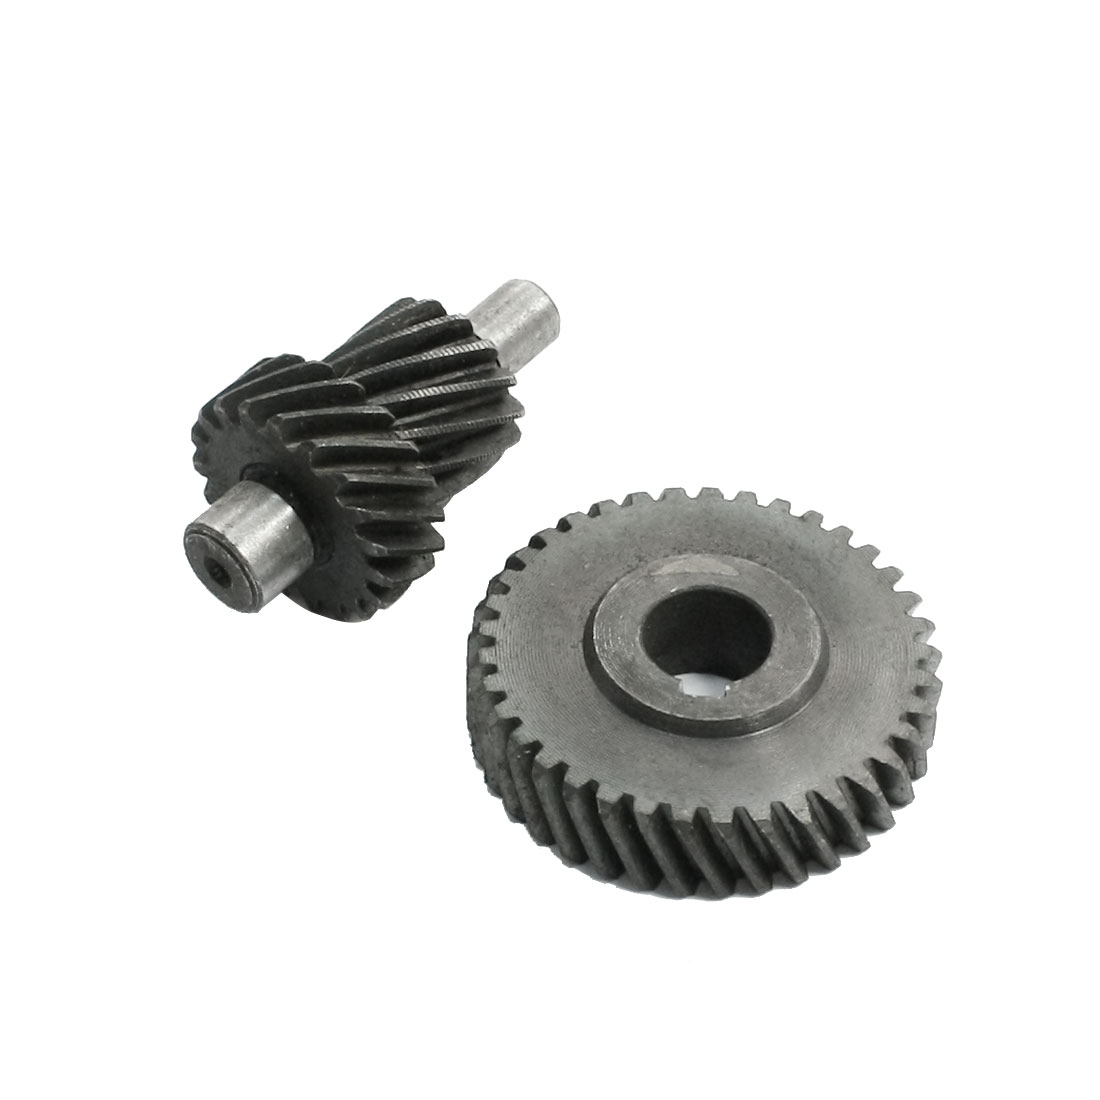 Angle Grinder Repair Component Black Gray 33mmx8mm Spiral Bevel Gear Set